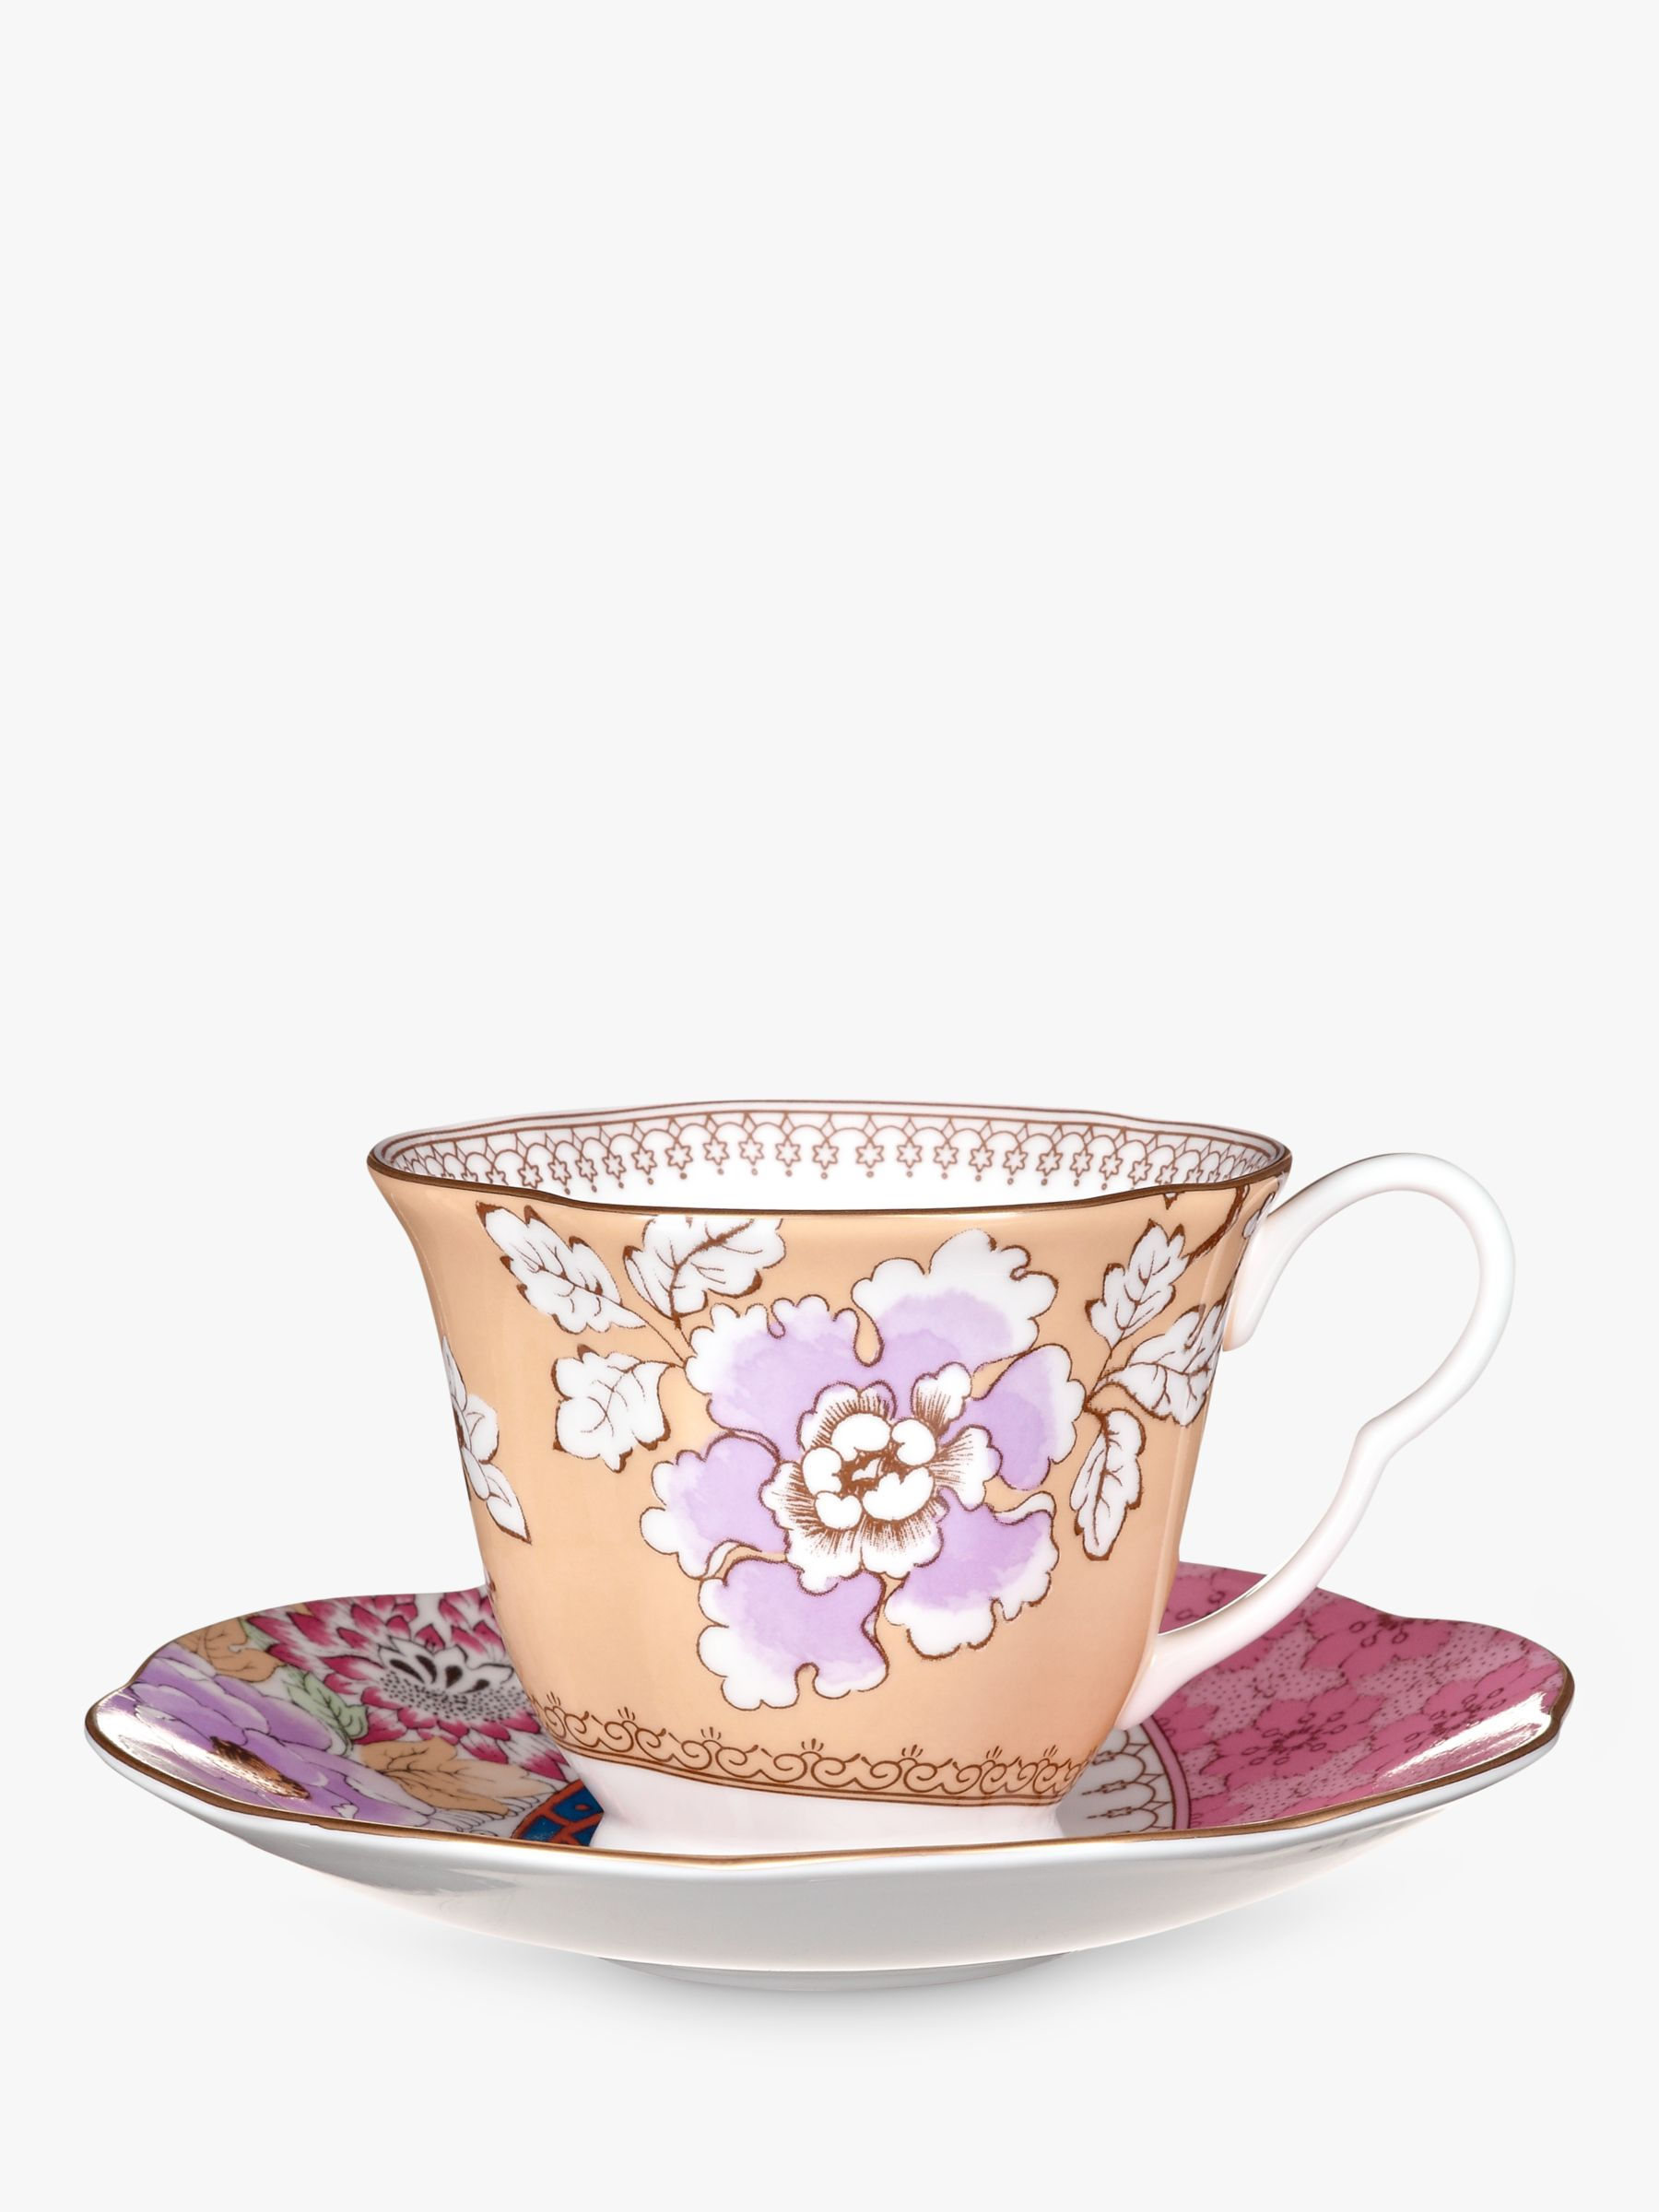 Wedgwood Wedgwood Butterfly Bloom Cup and Saucer Set, Yellow